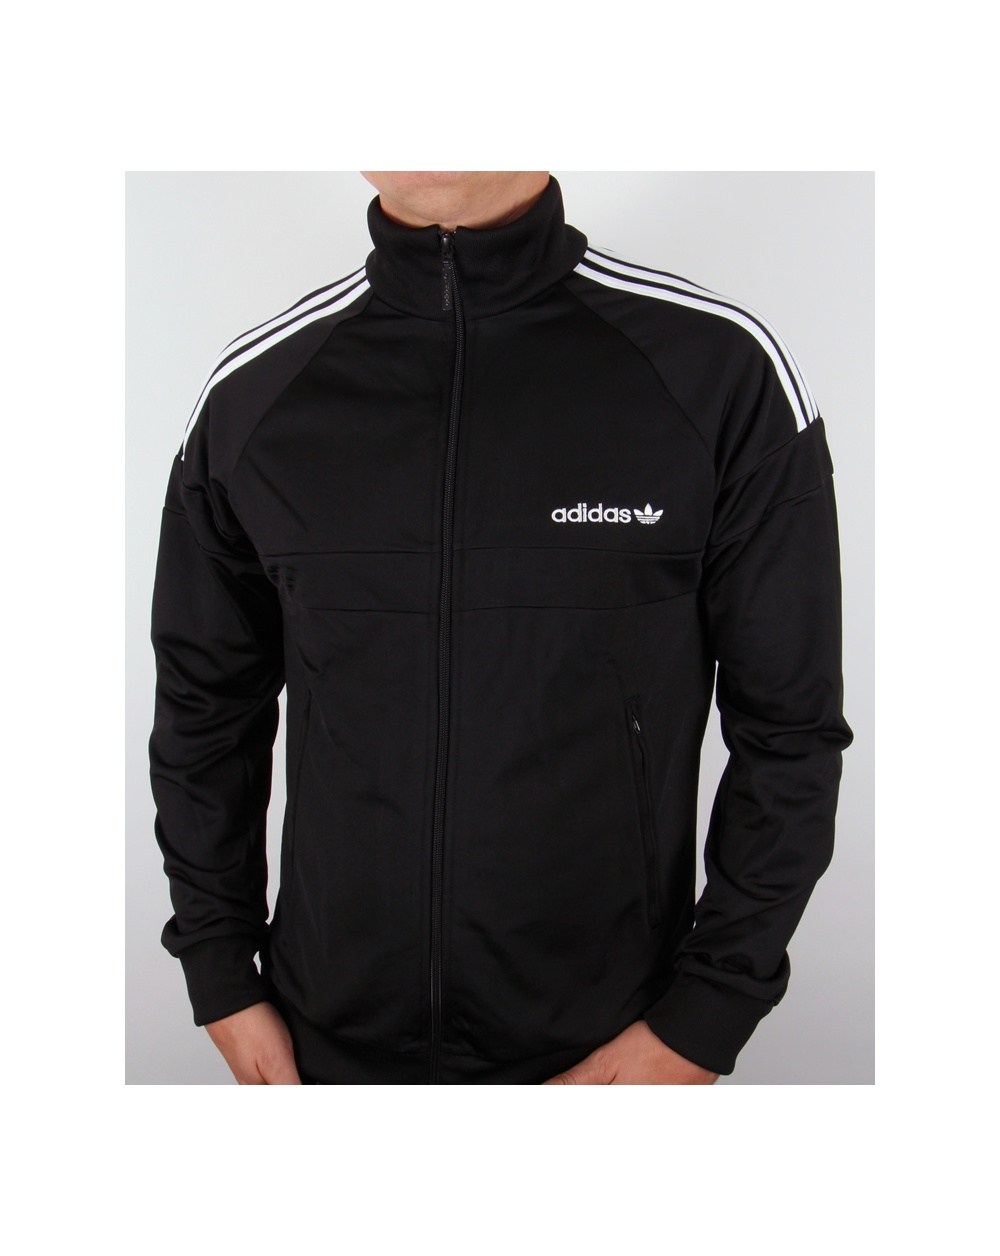 adidas originals itasca track top black jacket tracksuit mens. Black Bedroom Furniture Sets. Home Design Ideas